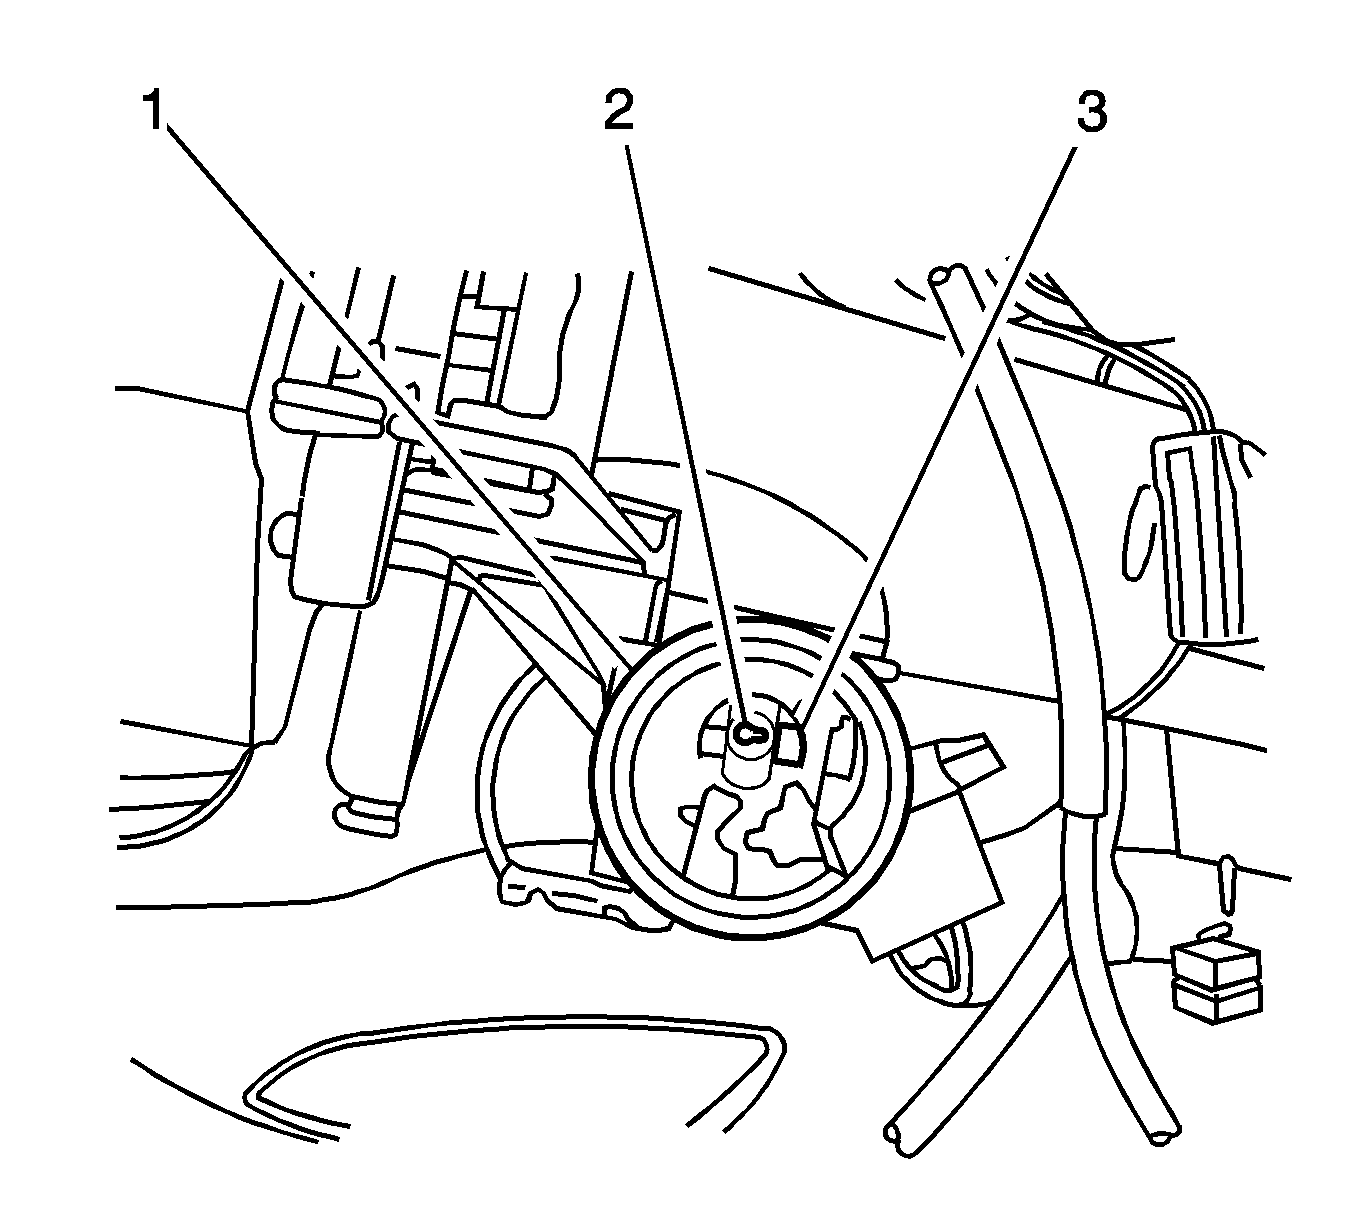 Ignition Lock Cylinder Removal & Replacement-calvjxs8.png